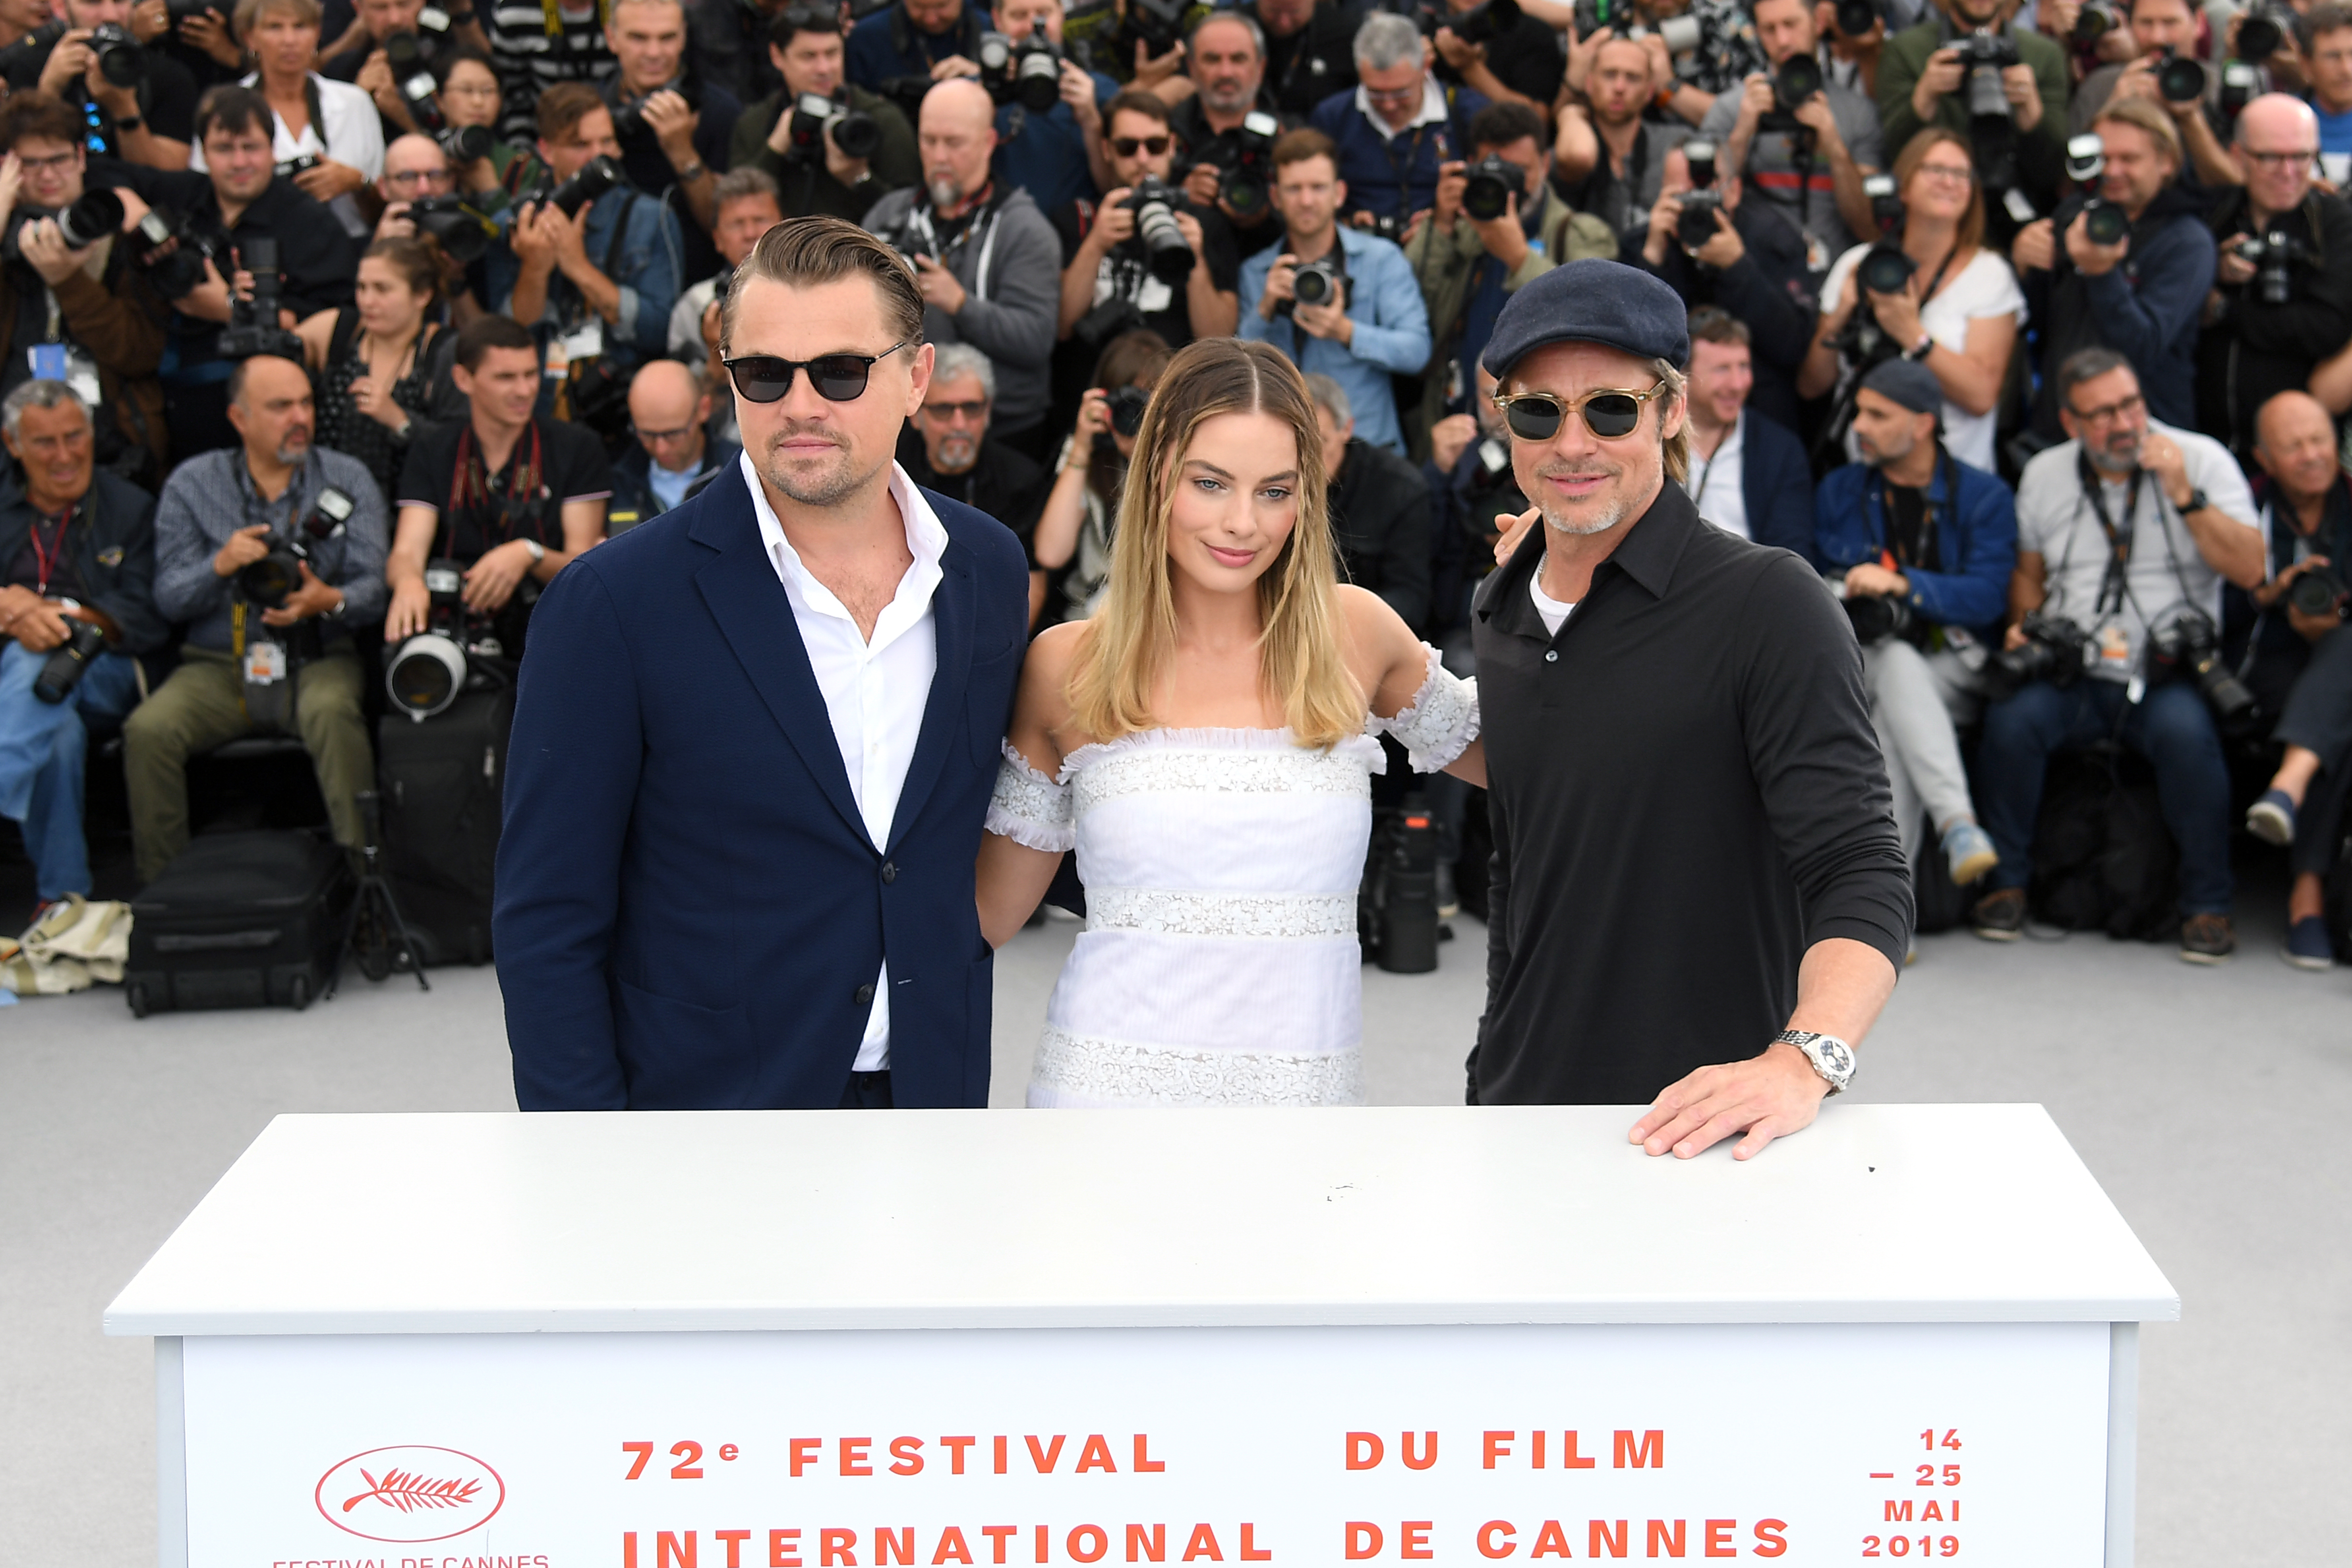 Brad Pitt and Leonardo DiCaprio at Cannes 2019 is Everything You Hoped For